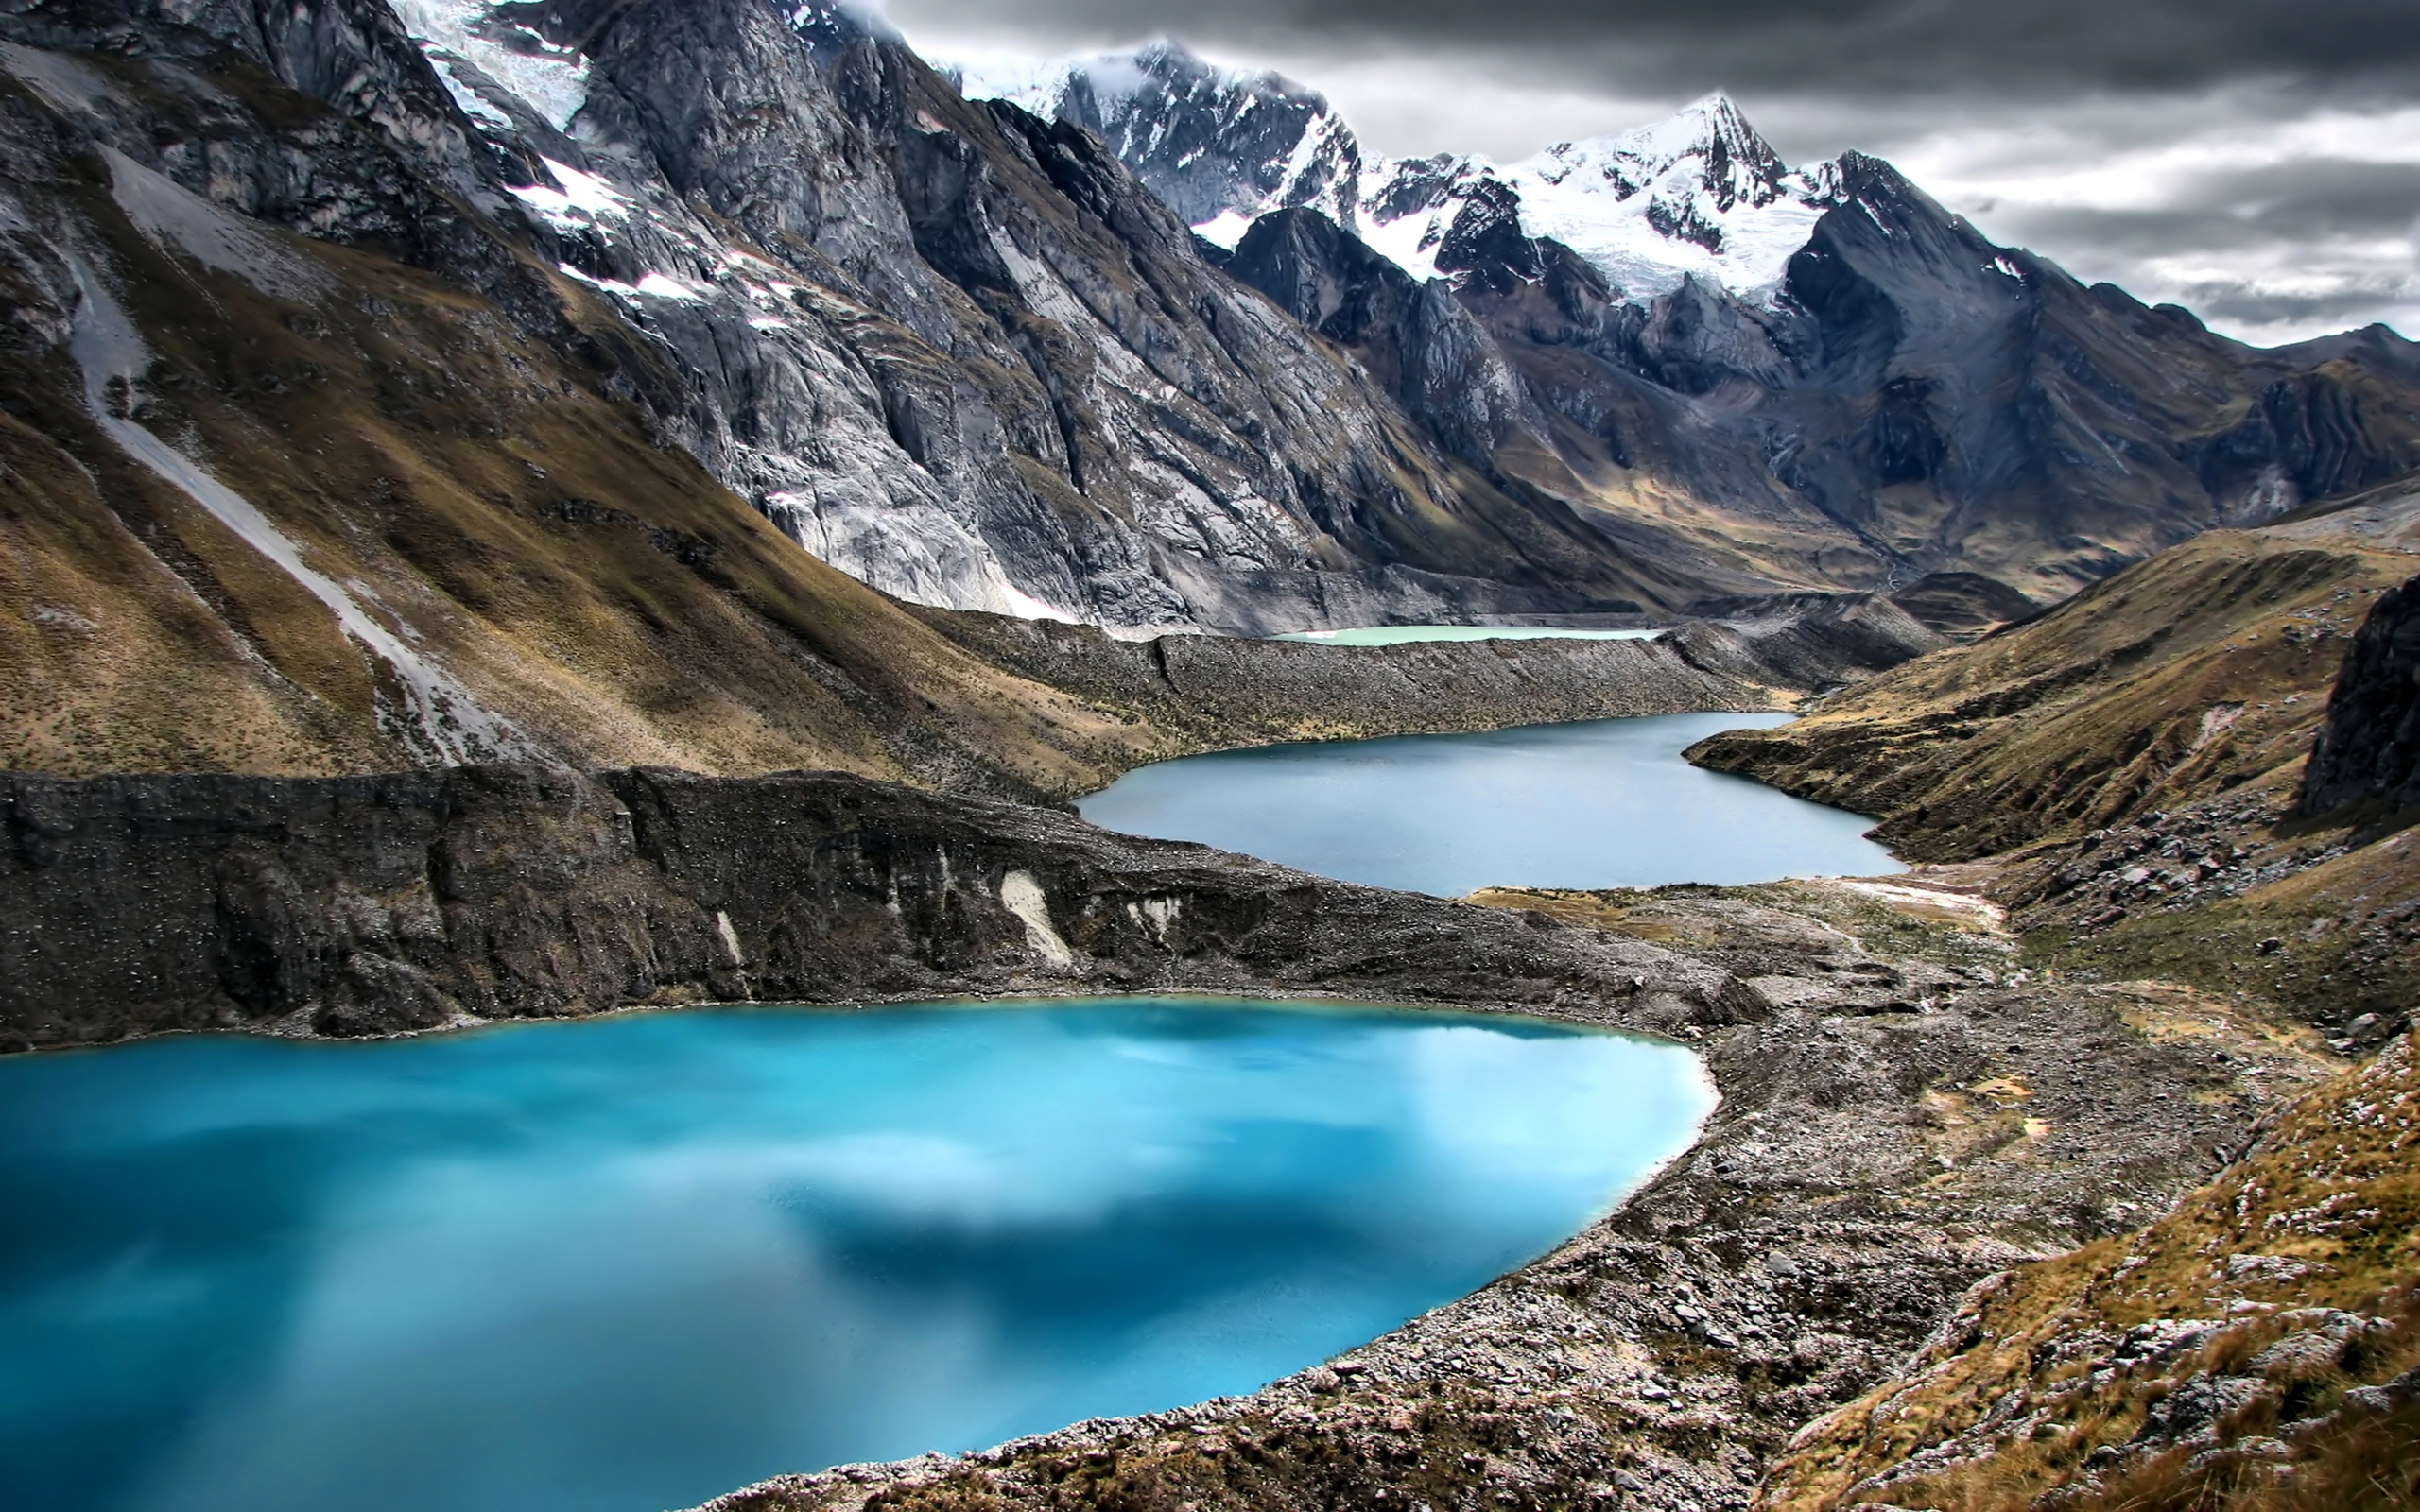 Pc Fall Wallpaper Peru Mountains Lake Cordillera Huayhuash Nature 409980